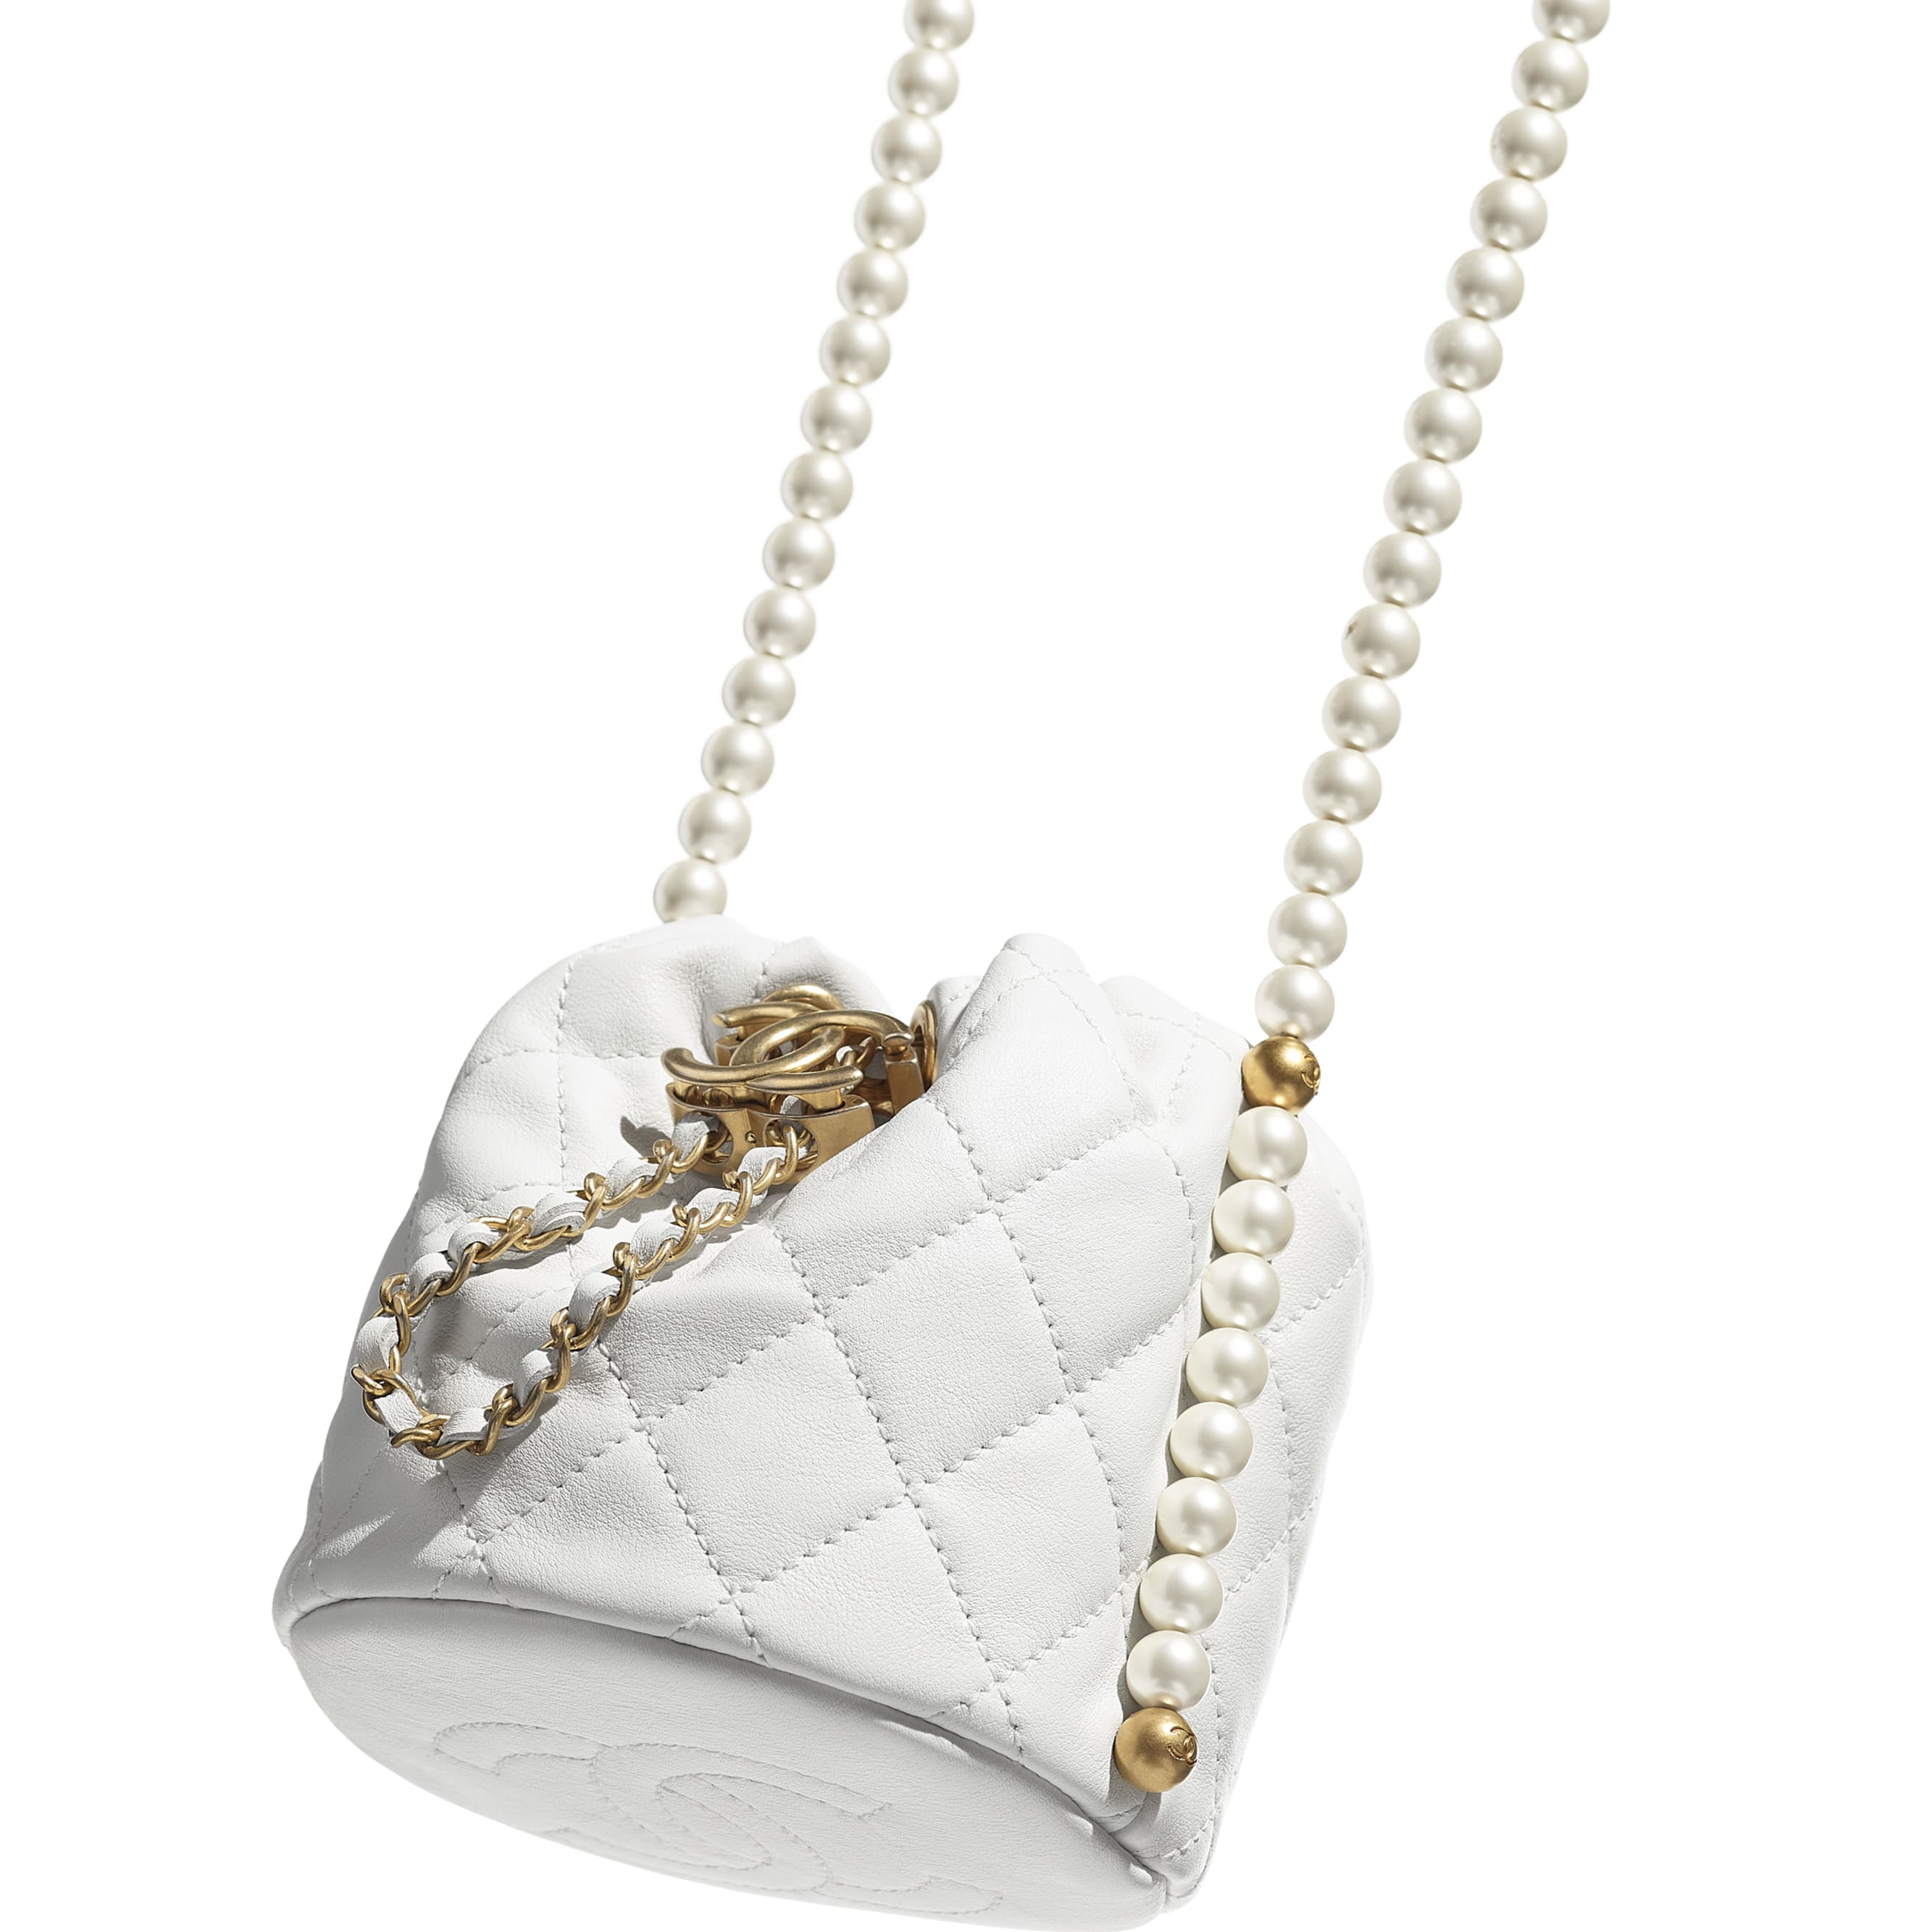 Mini Drawstring Bag - White - Calfskin, Imitation Pearls & Gold-Tone Metal - CHANEL - Extra view - see standard sized version